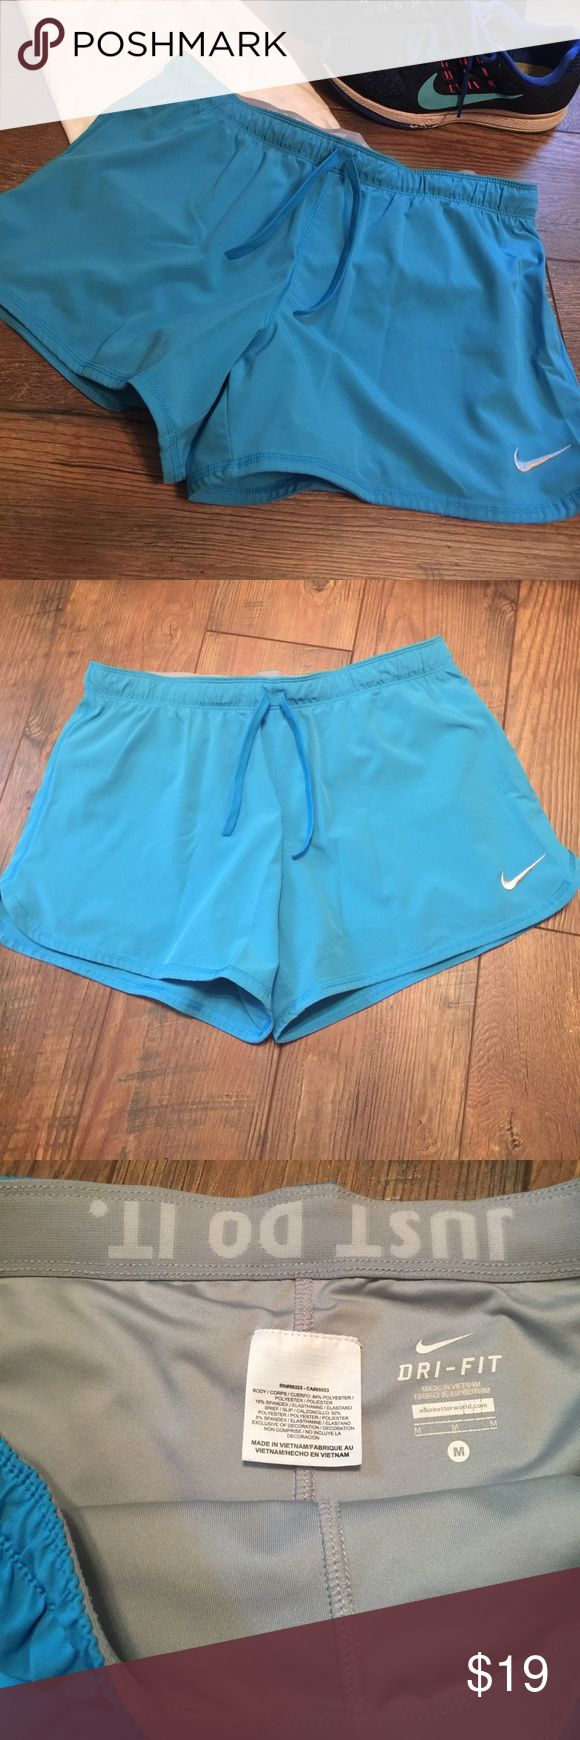 Nike Dry Fit Shorts These are a pair of light blue Nike dri fit shorts. They are a size medium and have a white Nike emblem on the front. Please let me know if you have any questions. Thanks Nike Shorts